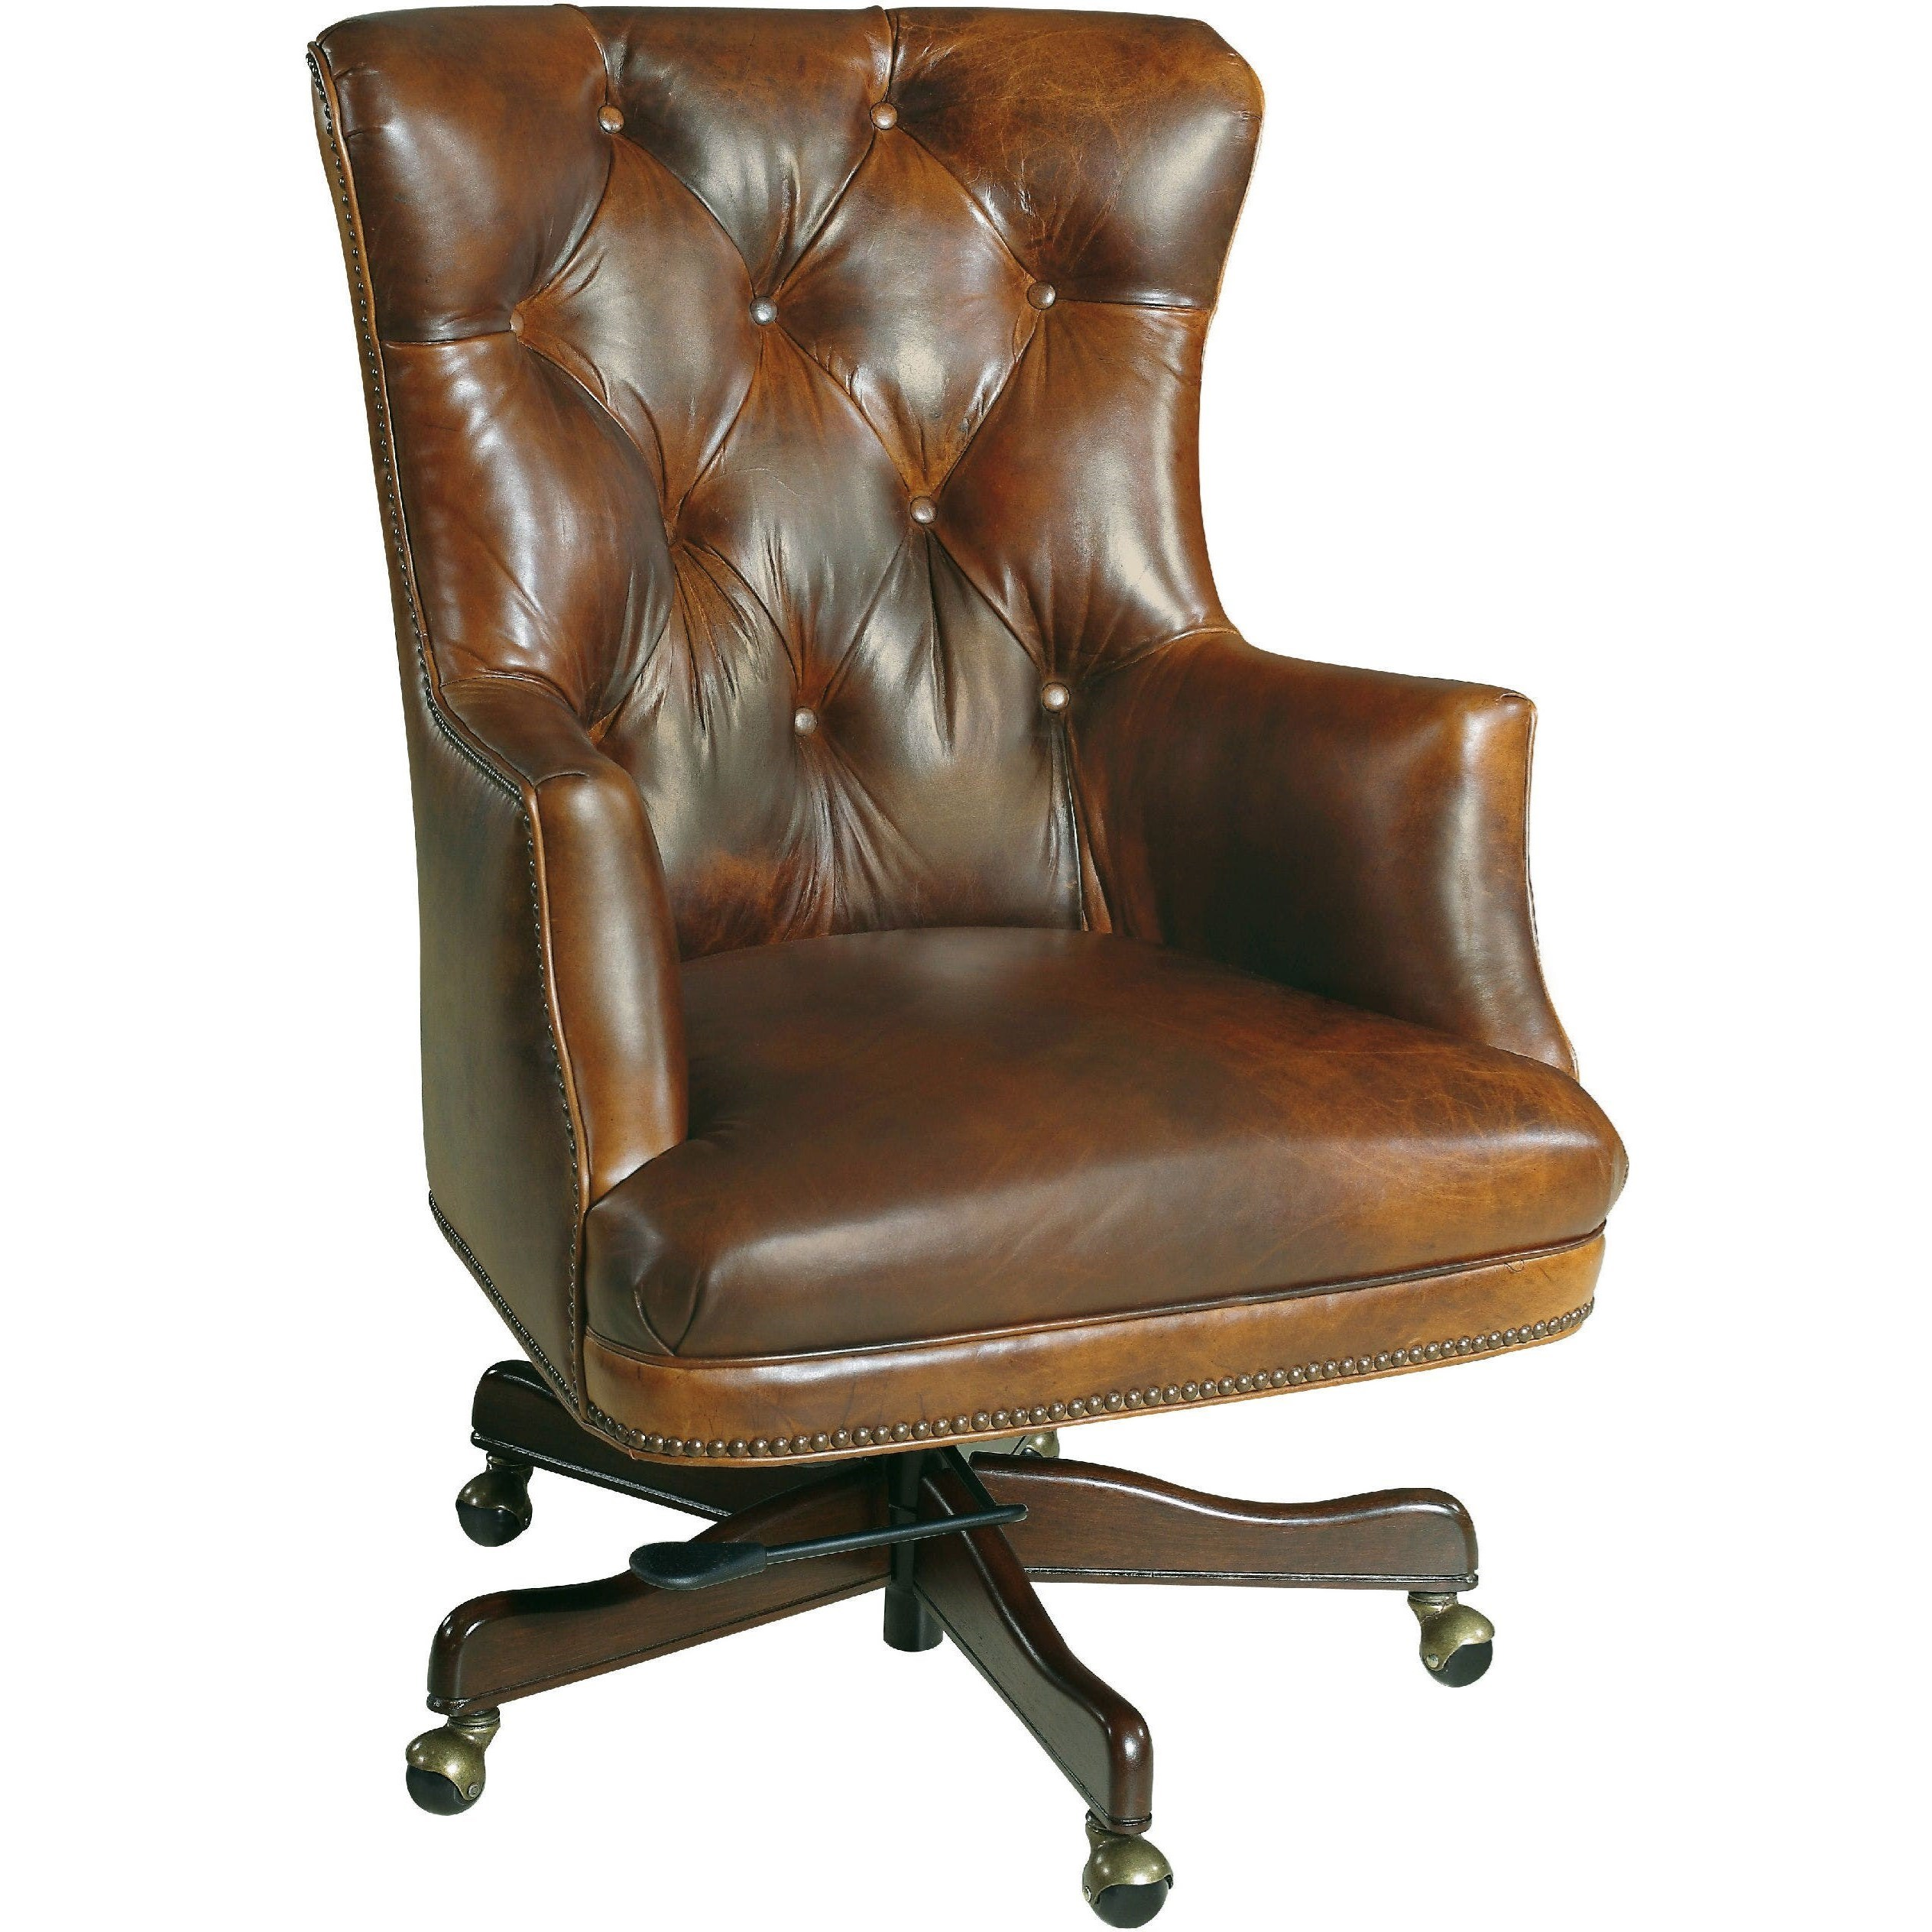 Executive Seating Executive Chair by Hooker Furniture at Miller Waldrop Furniture and Decor